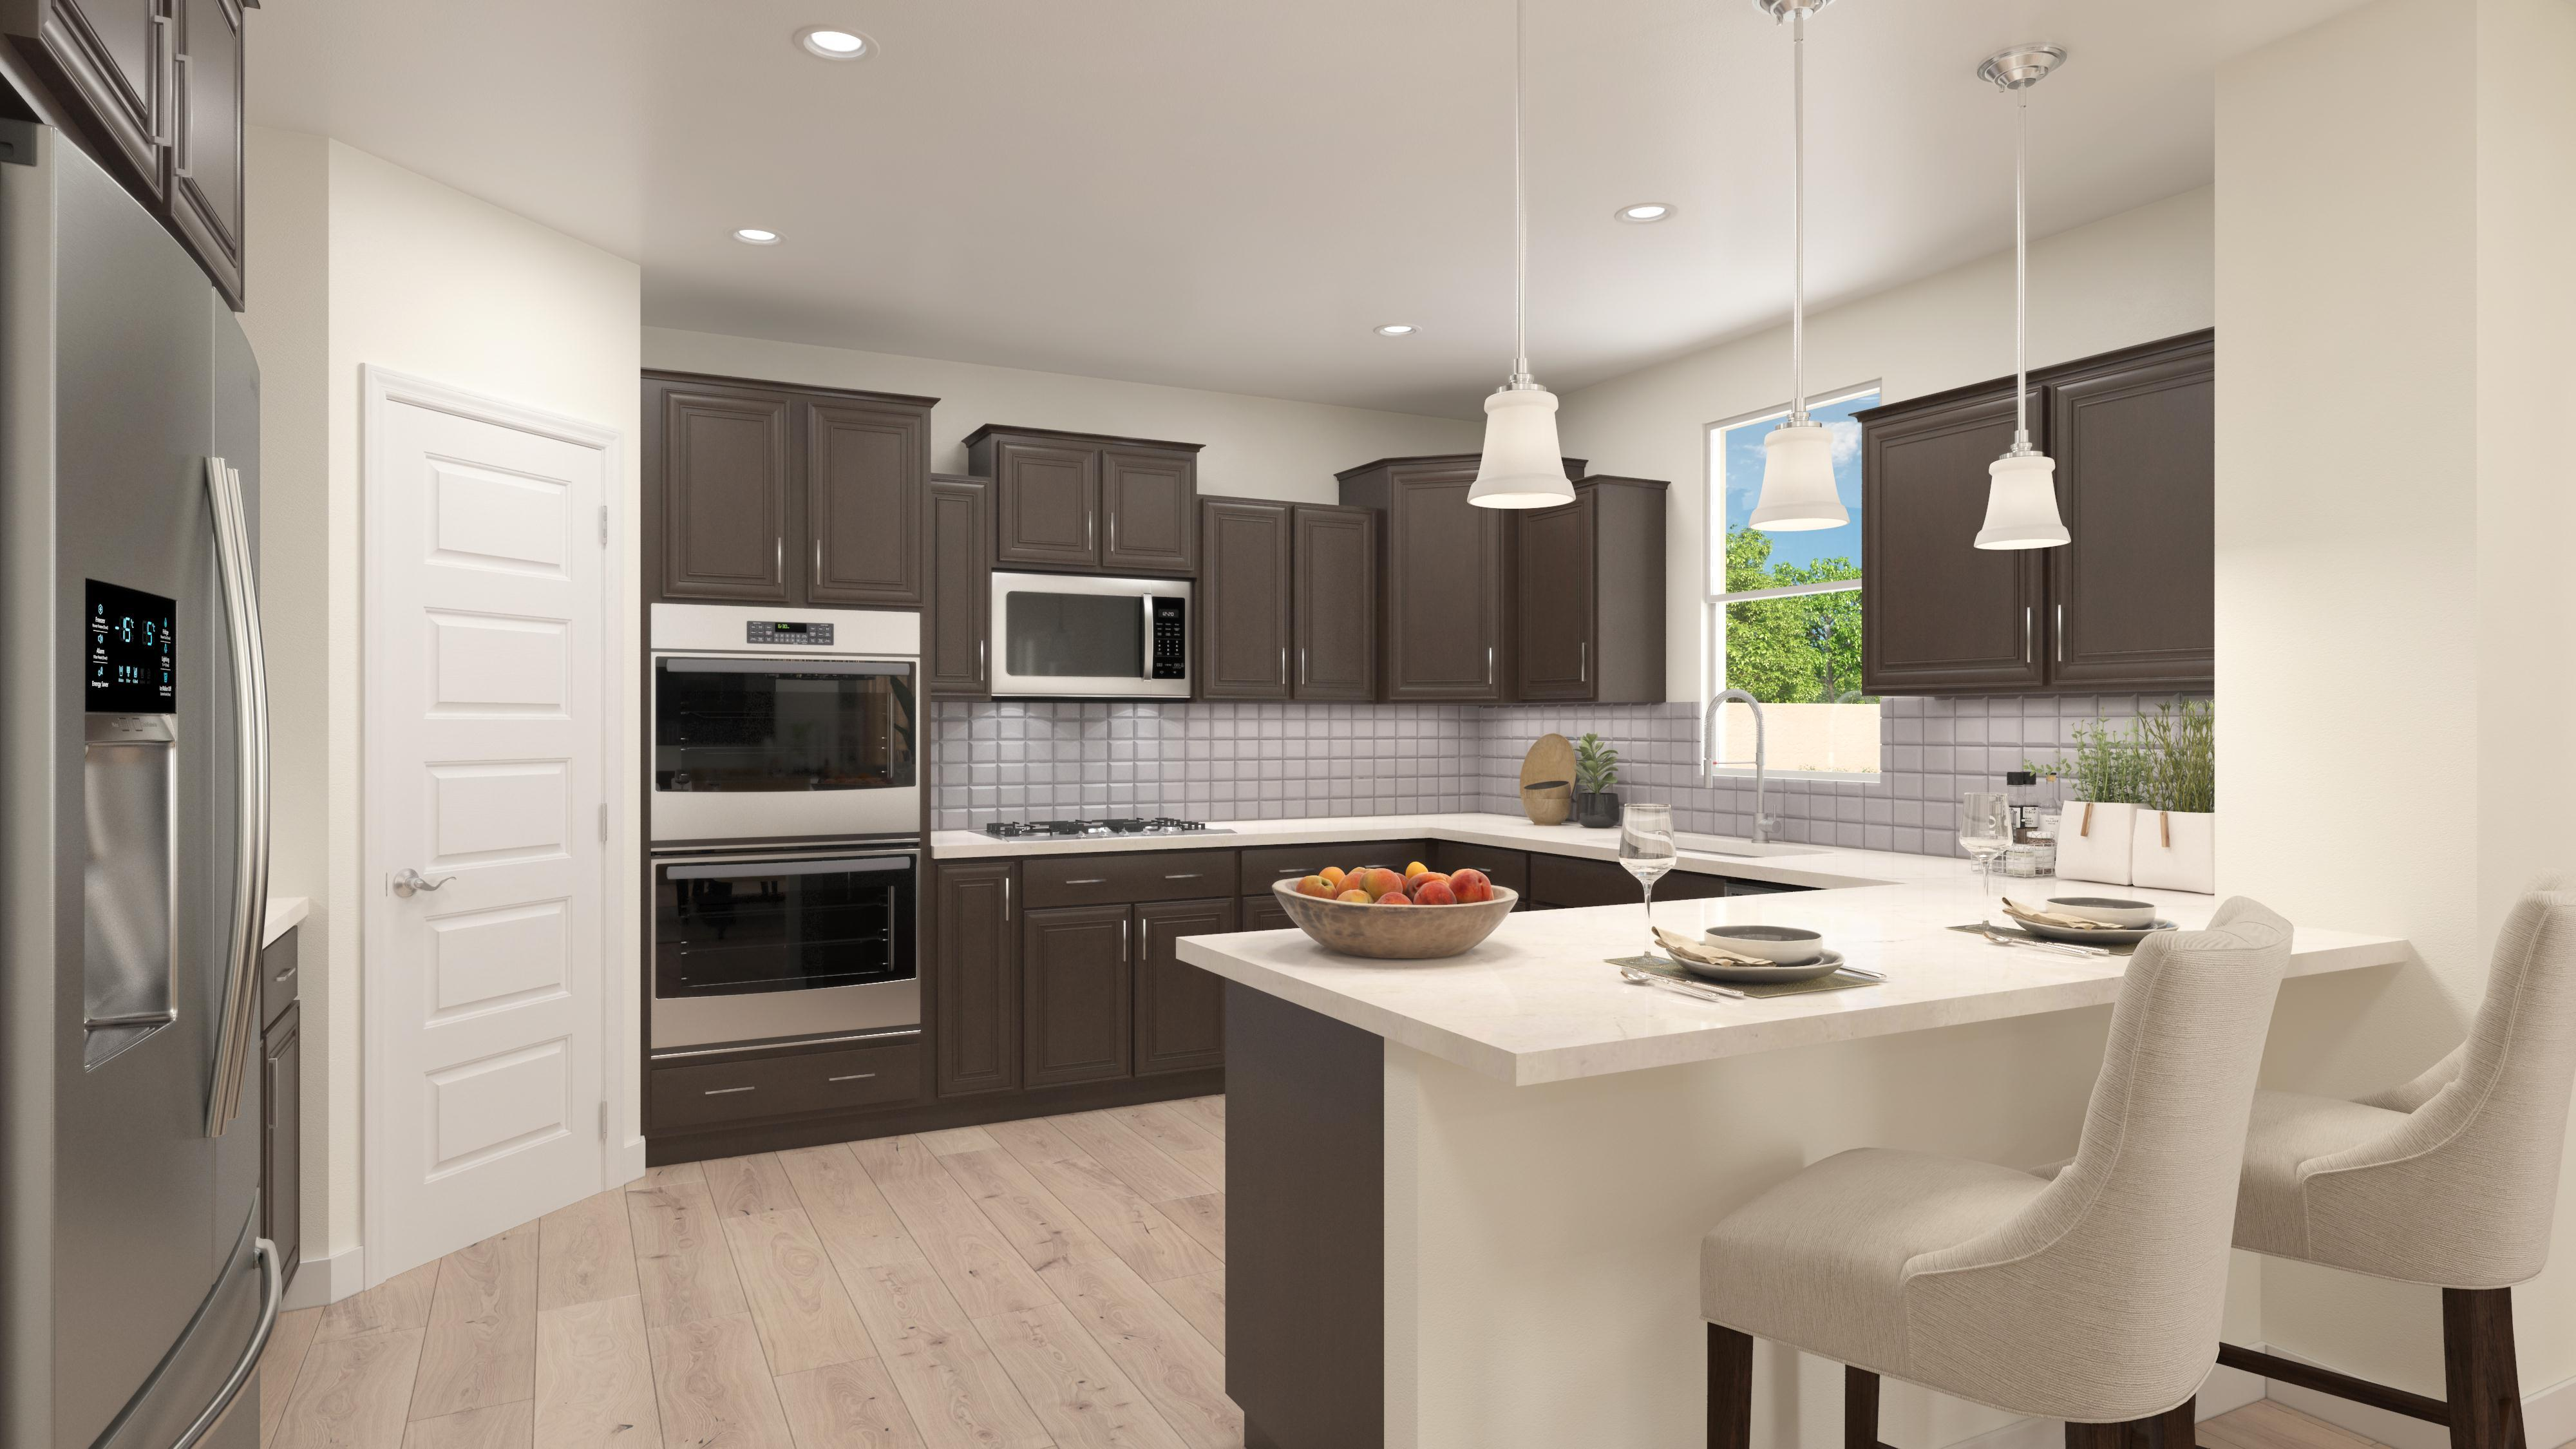 Kitchen featured in the Providence By Cresleigh Homes Arizona, Inc. in Phoenix-Mesa, AZ